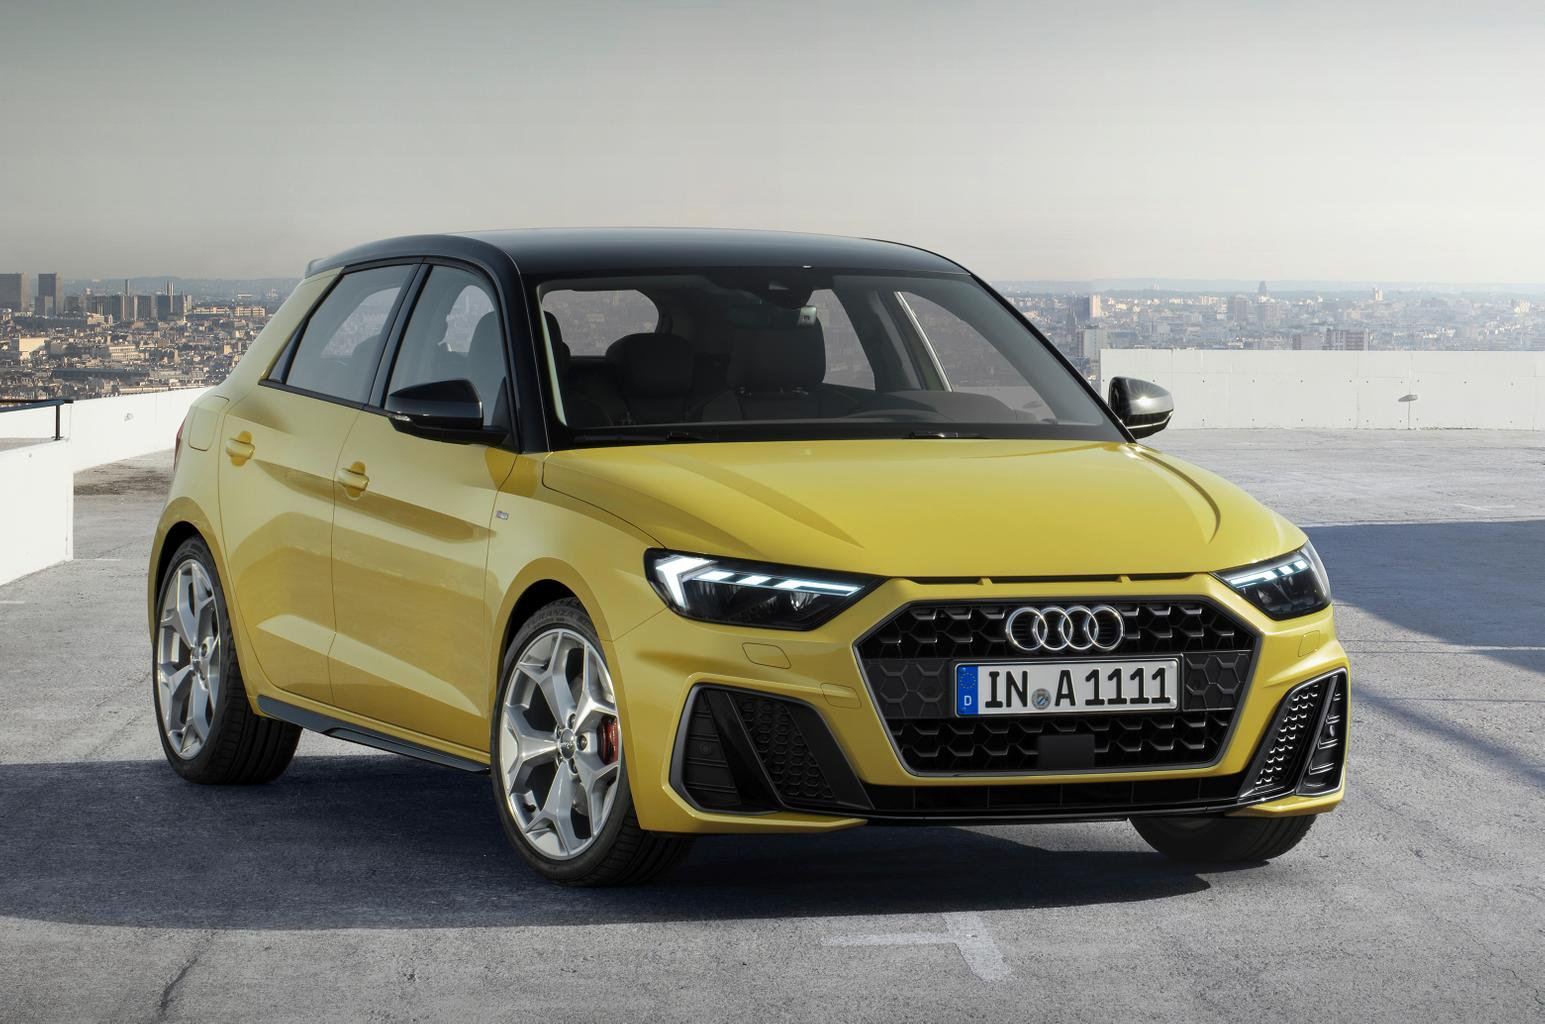 2019 Audi A1 revealed – price, specs and release date